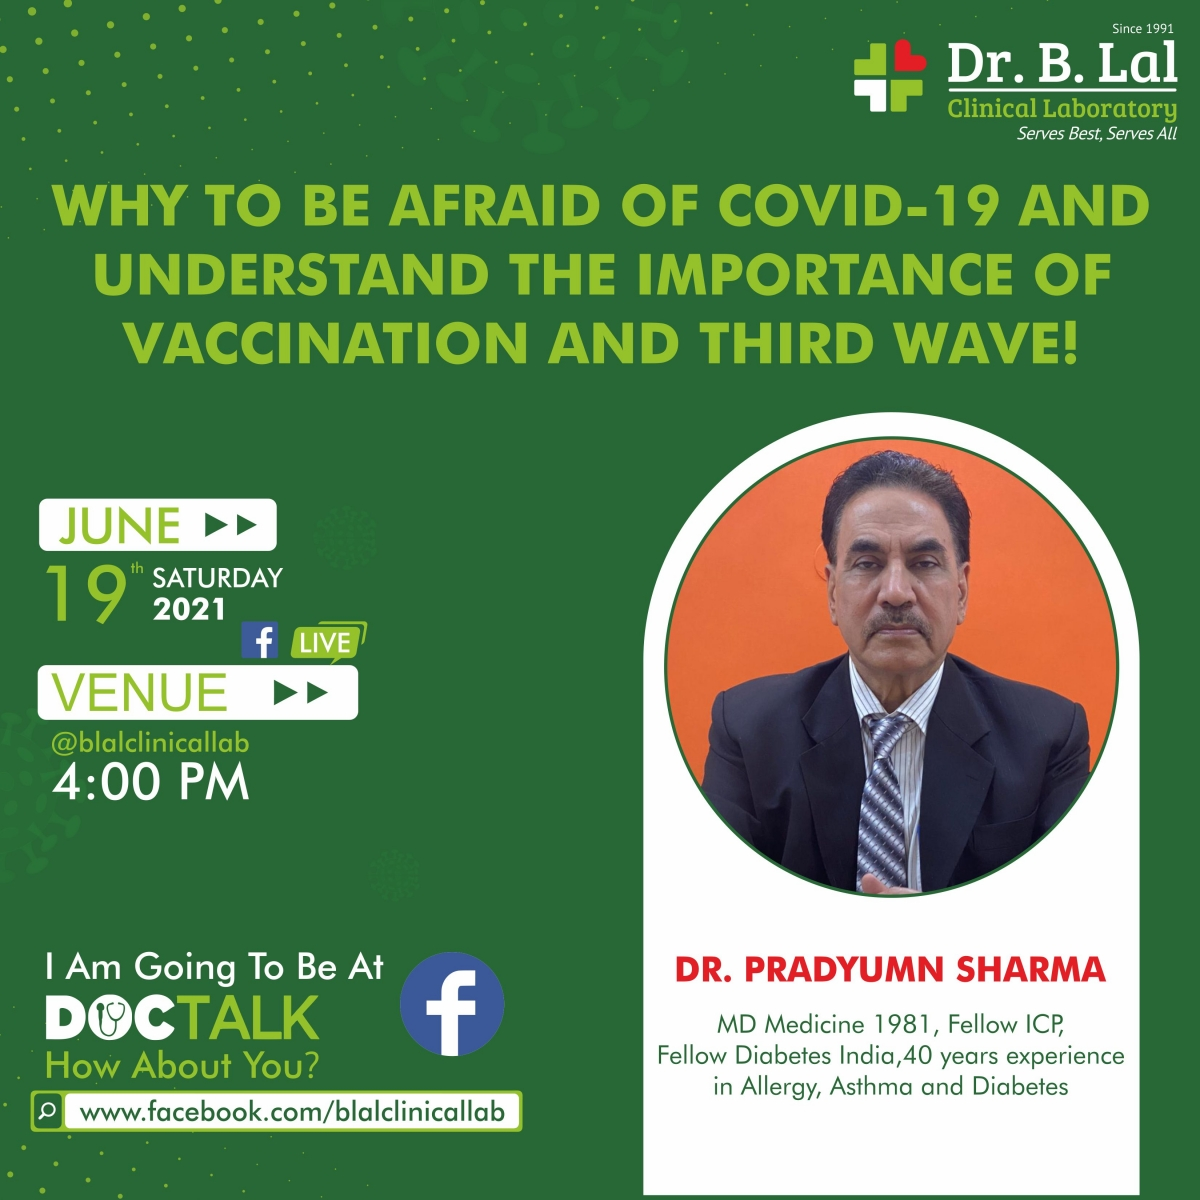 Doctalk   Why to be afraid of Covid-19   Understand the importance of vaccination & third wave